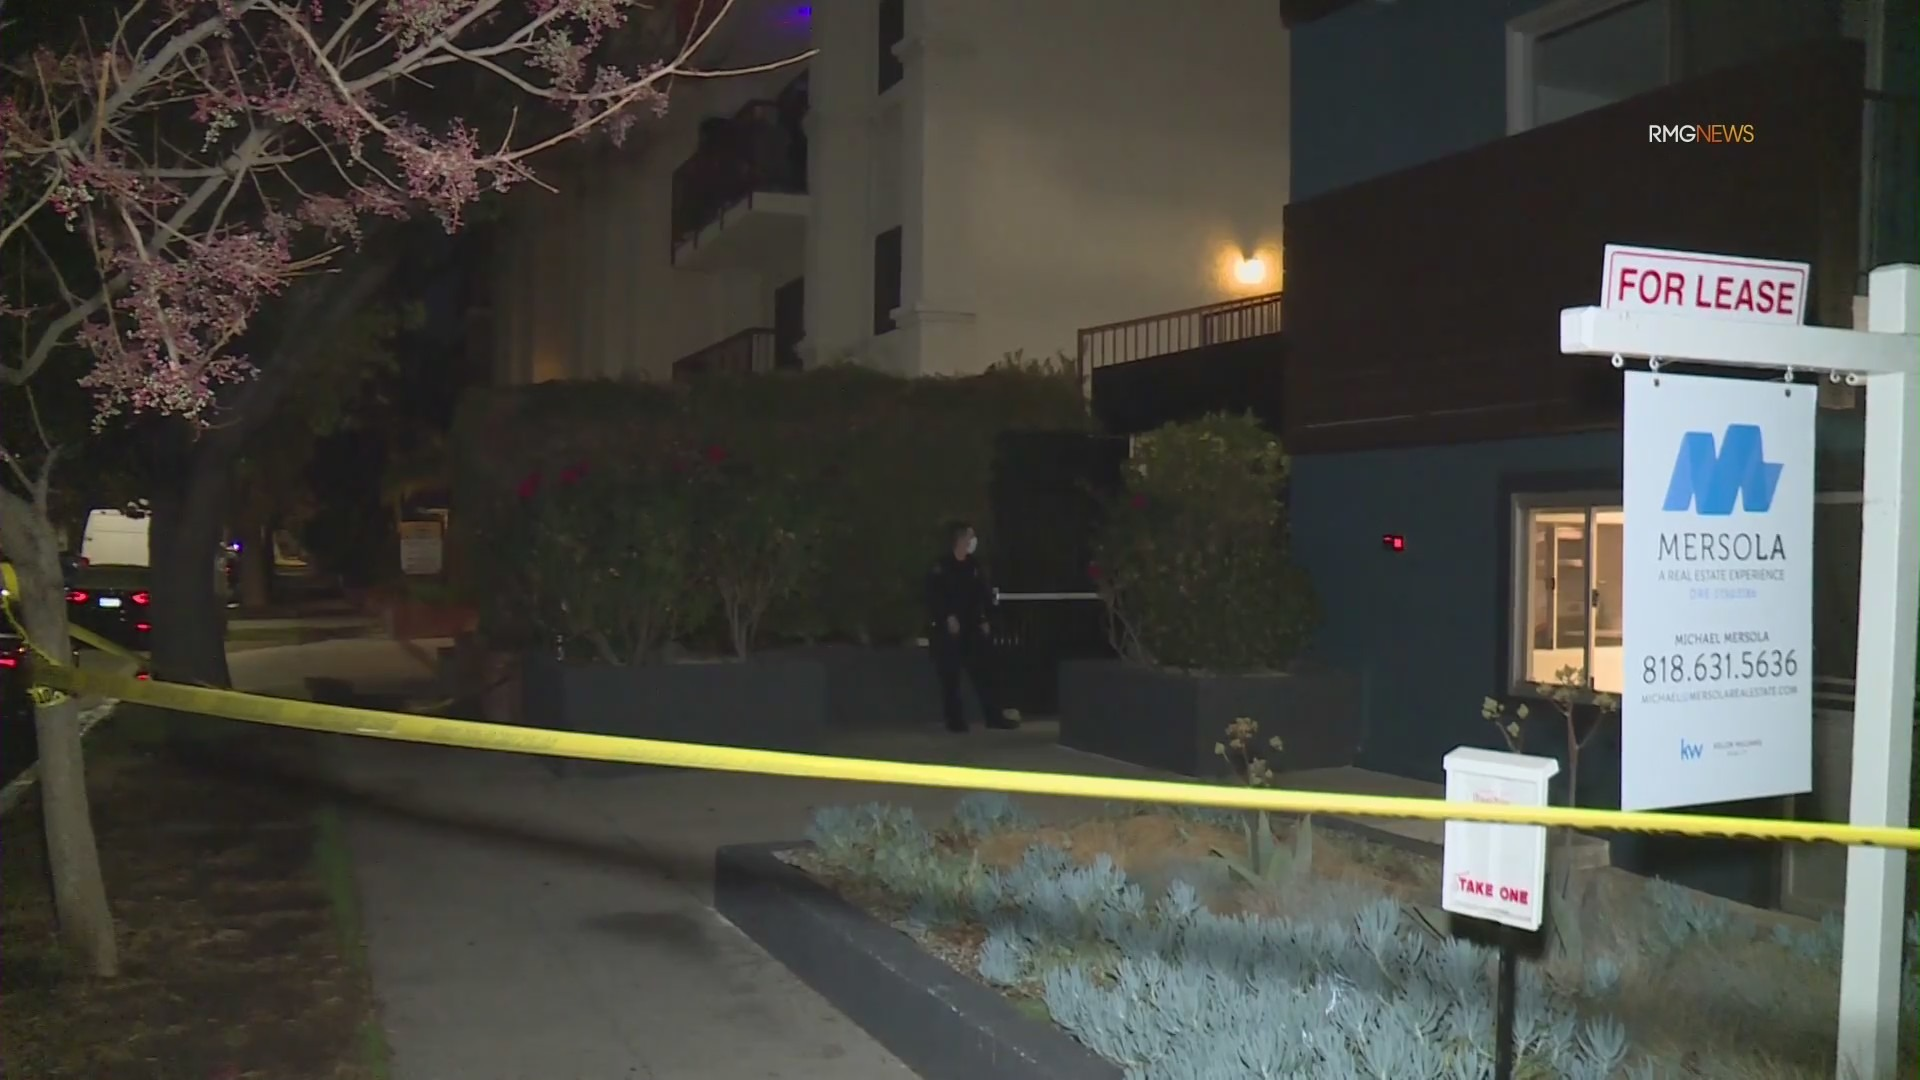 Police investigate a fatal shooting in Burbank on Jan. 26, 2021. (RMG News)